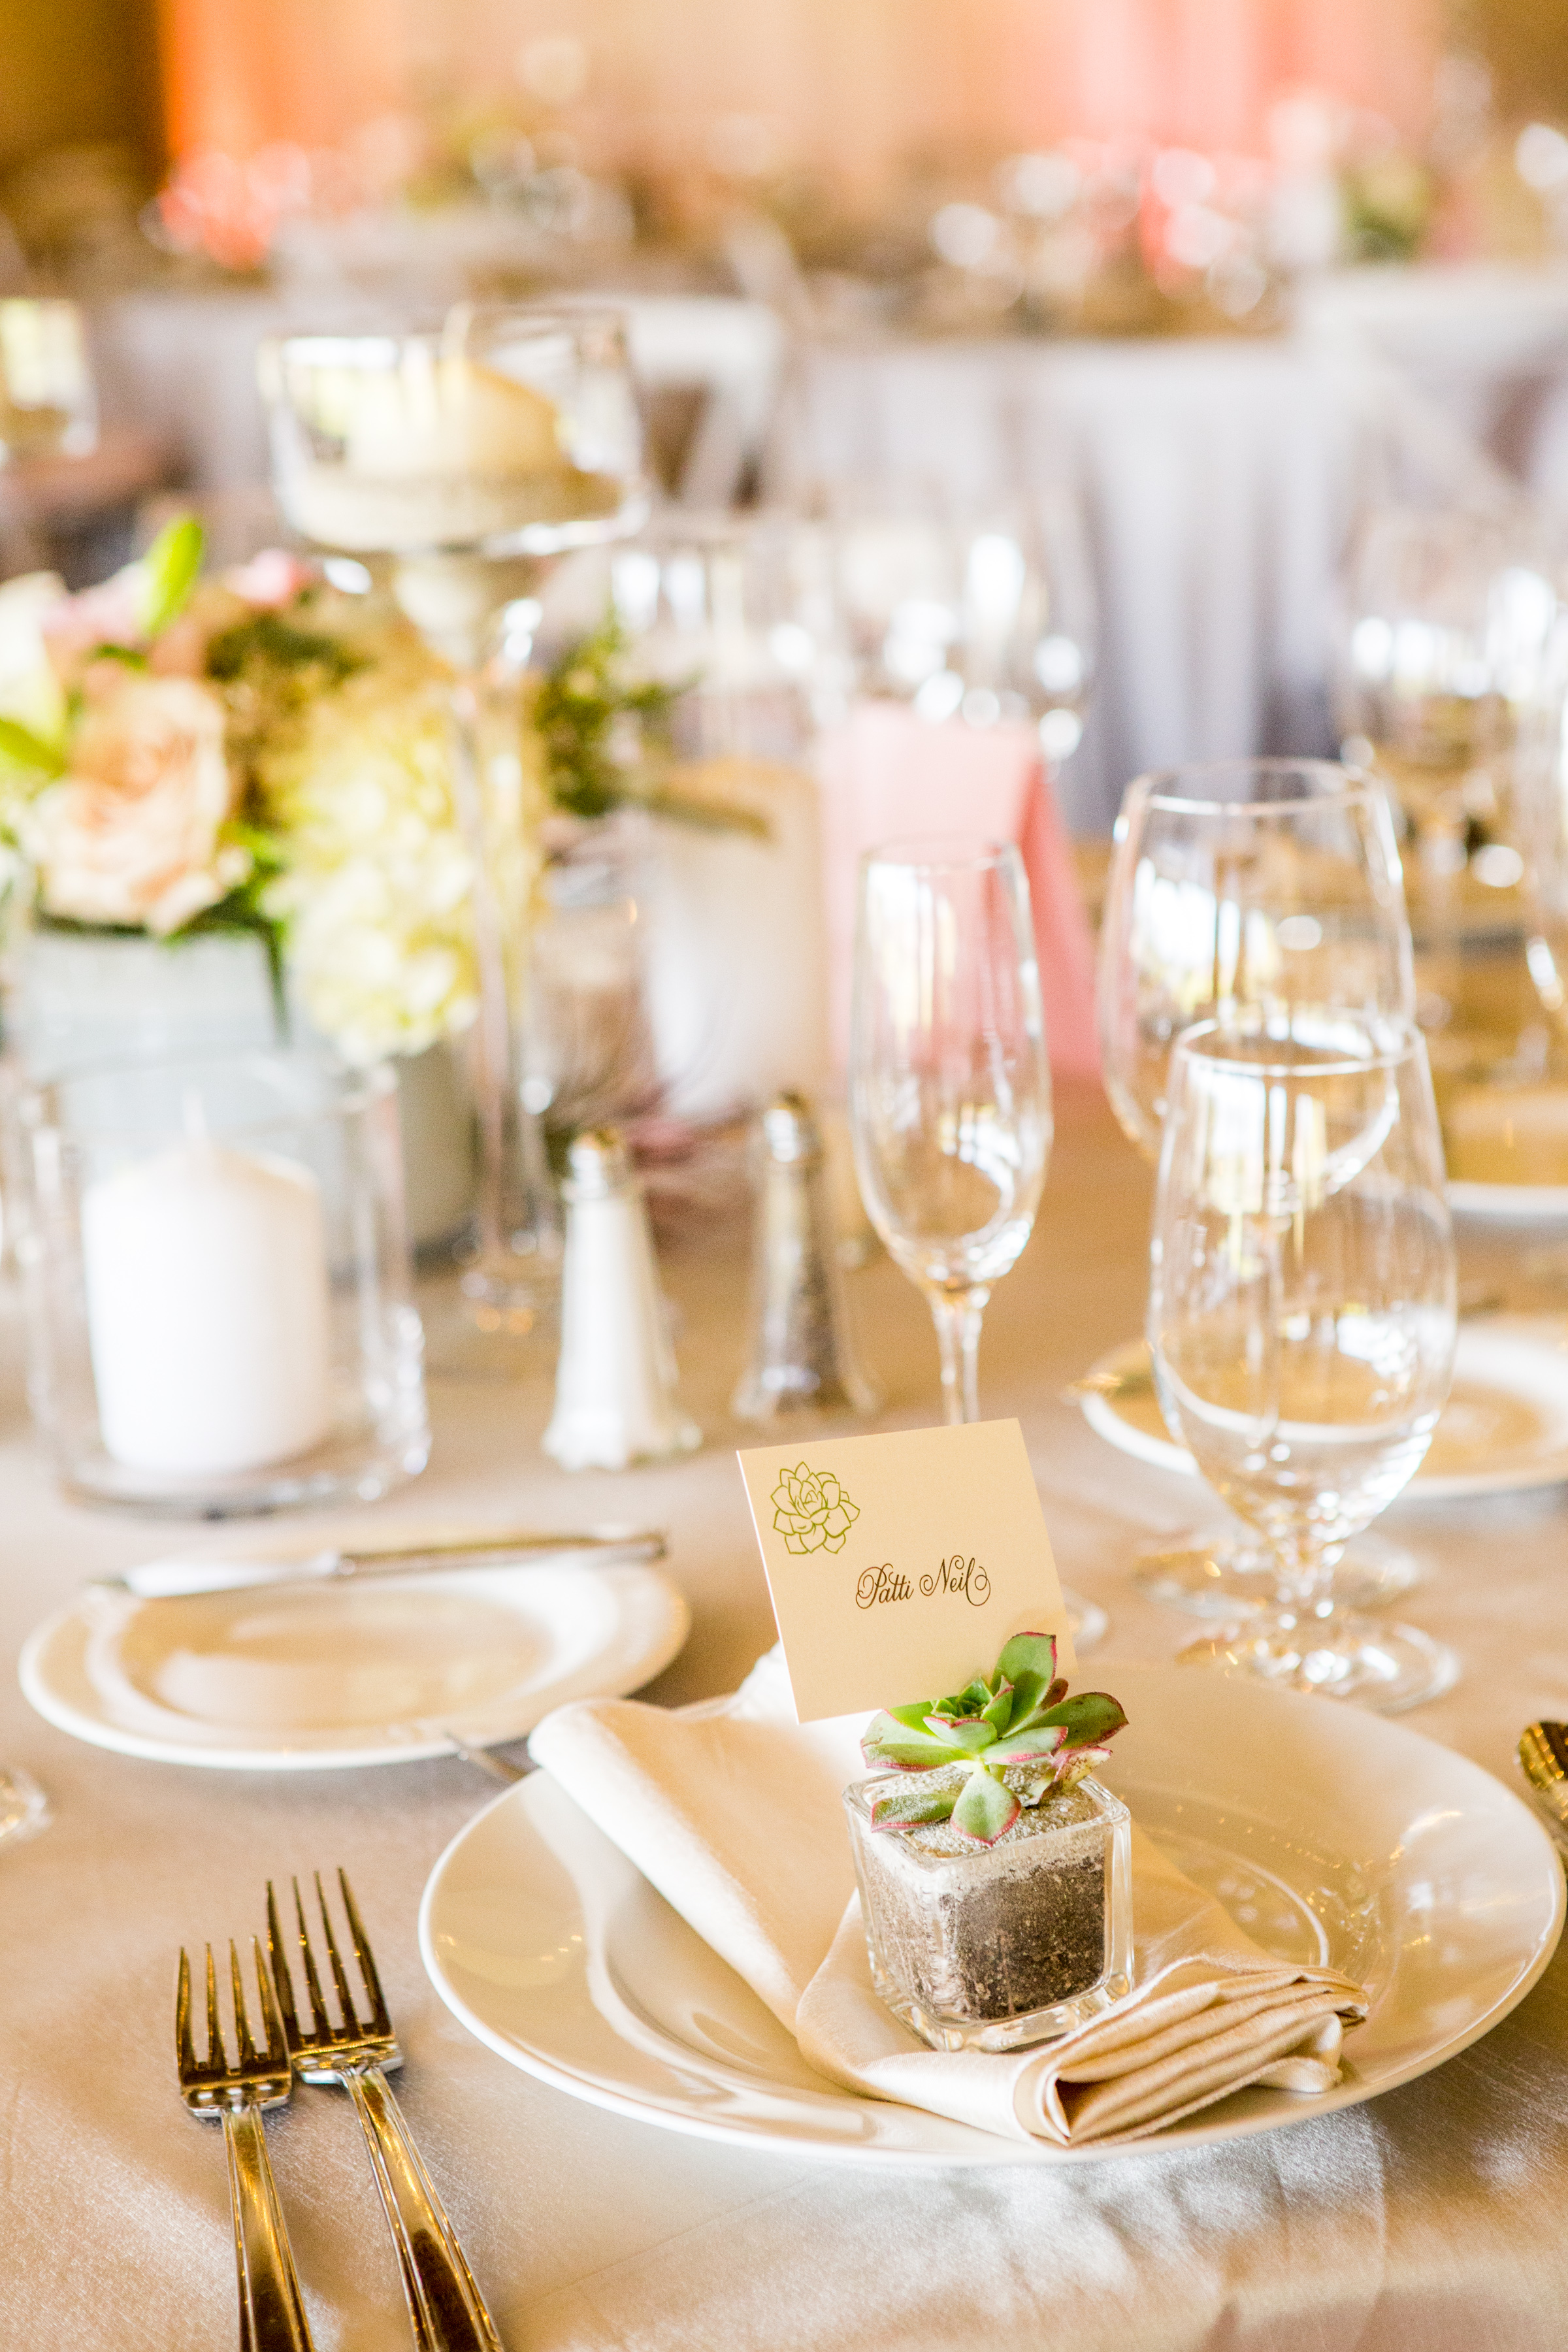 Champagne Brunch Wedding Reception Images Wedding Decoration Ideas Brunch  Wedding Reception Choice Image Wedding Decoration Ideas